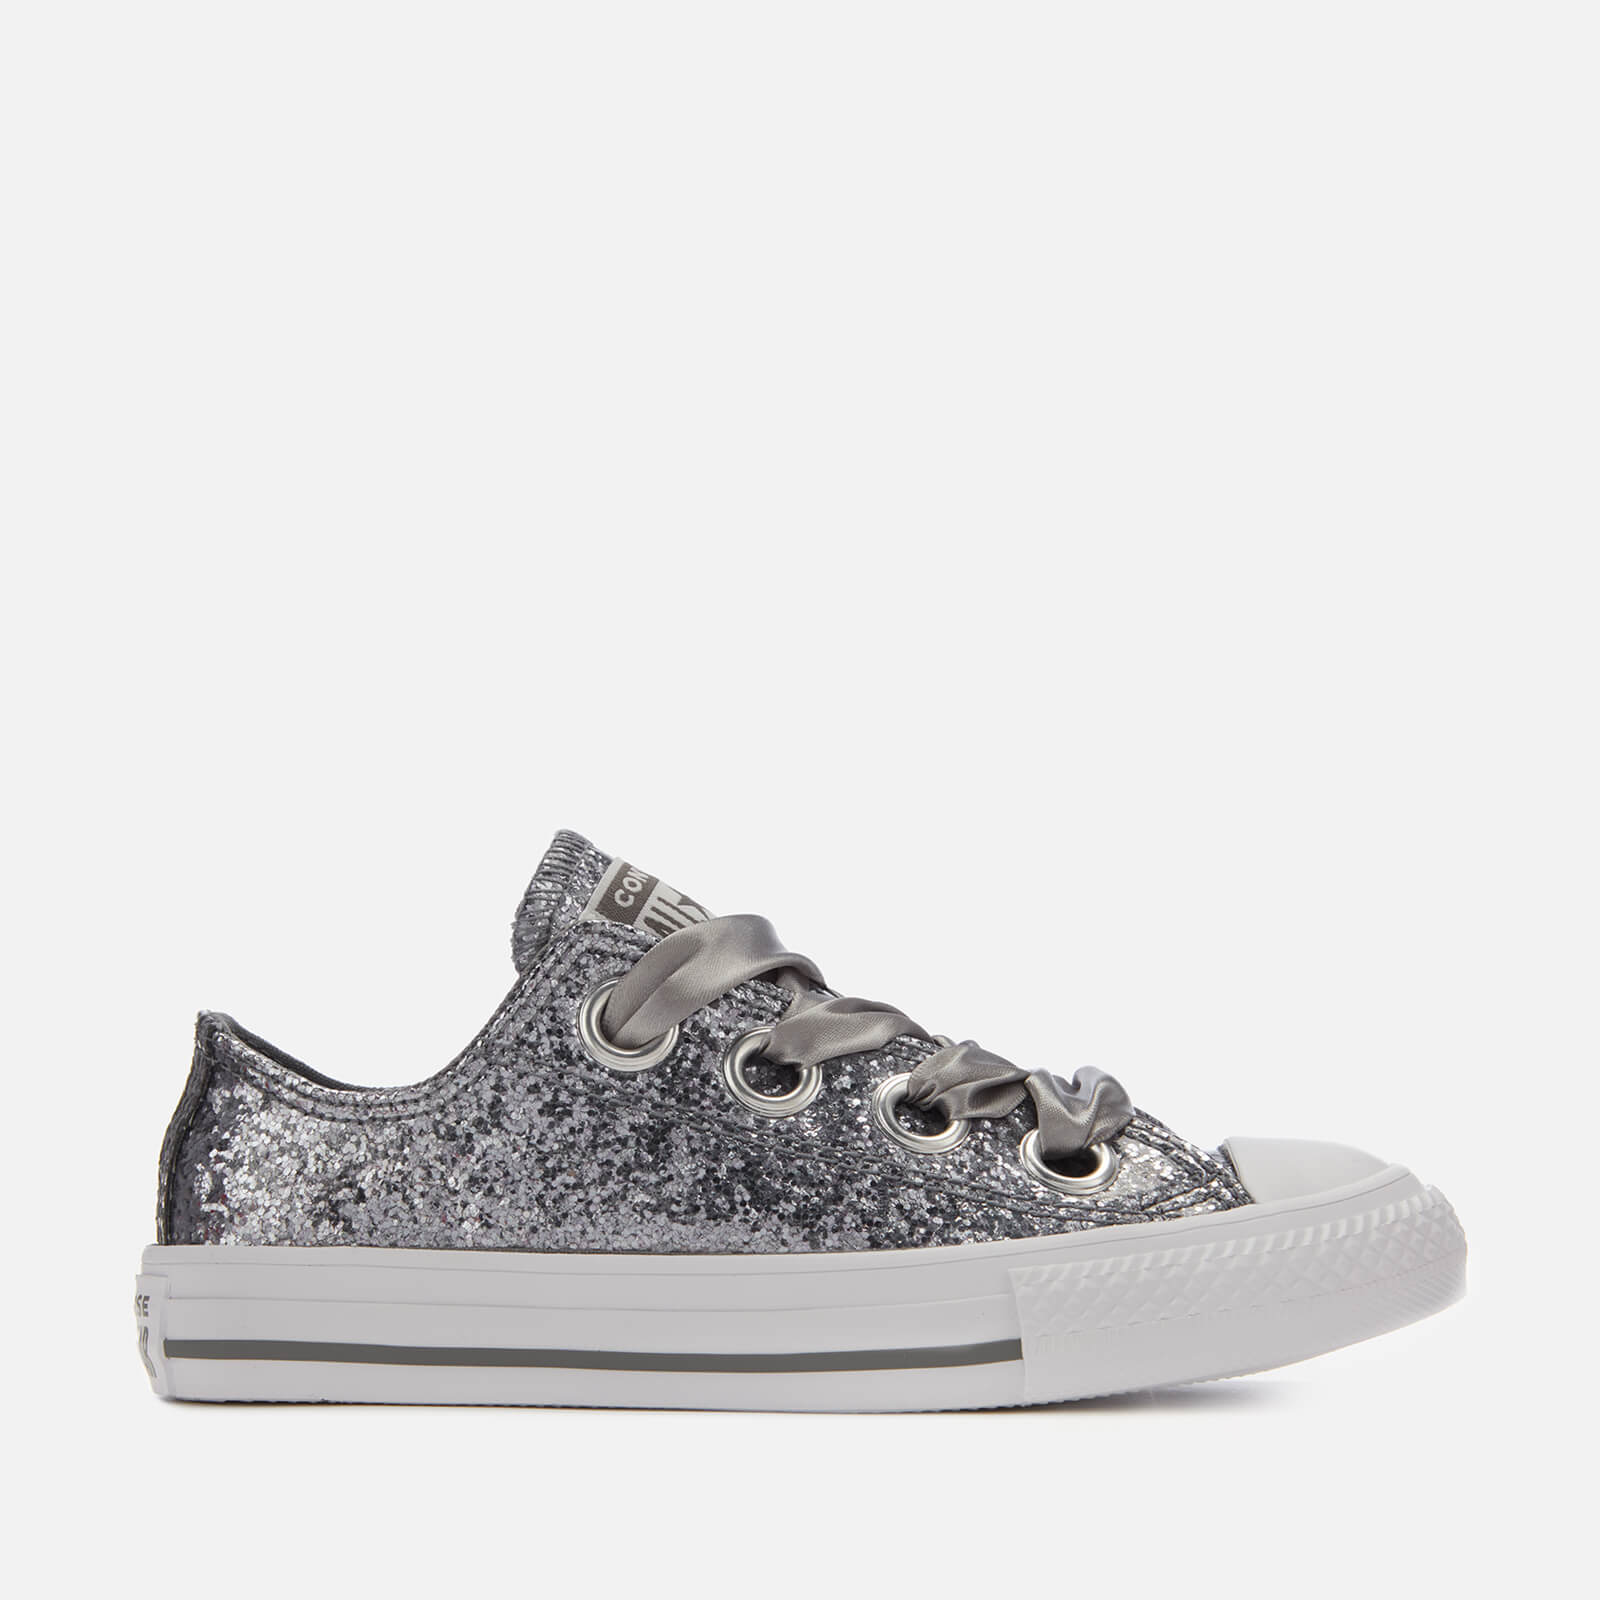 befd654568e6 Converse Kids  Chuck Taylor All Star Big Eyelets Ox Trainers -  Mason White White Junior Clothing